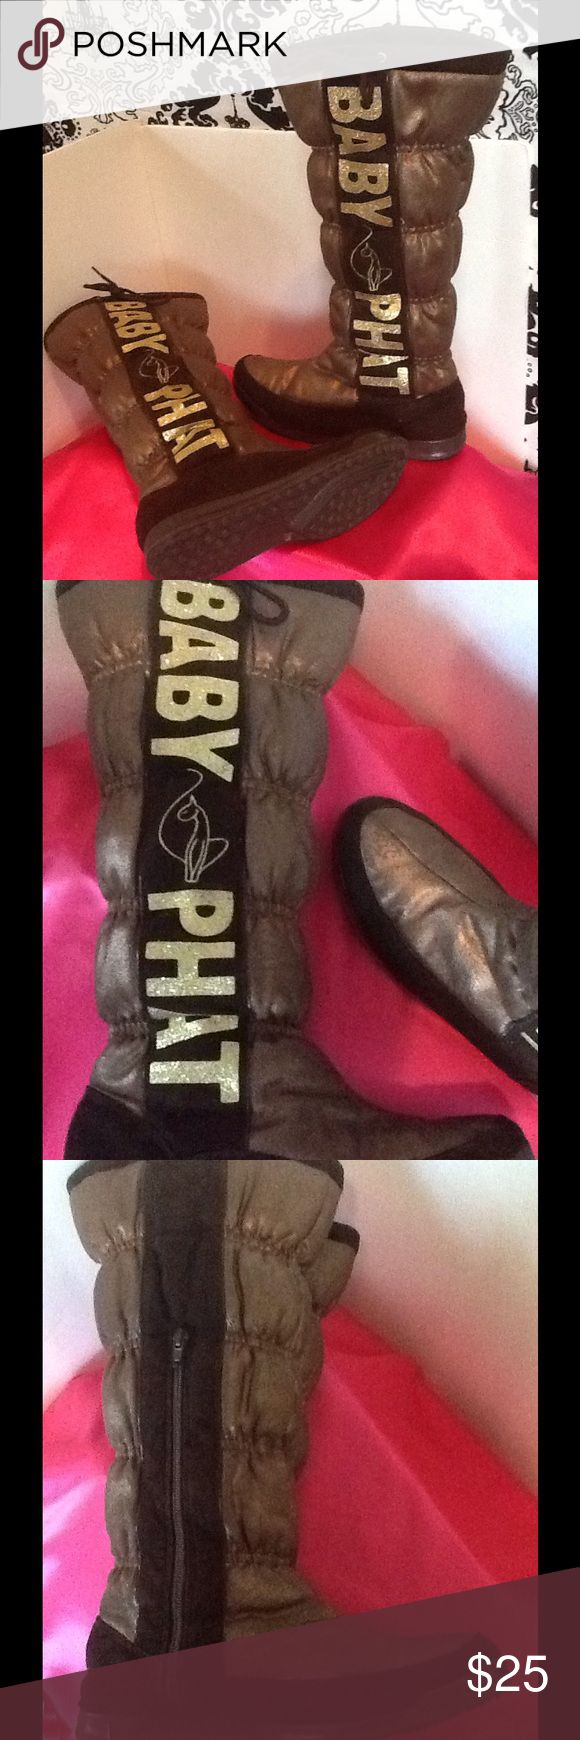 Baby Phat Boots (Used) Baby Phat Boots Brown with gold lettering. Baby Phat Shoes Winter & Rain Boots